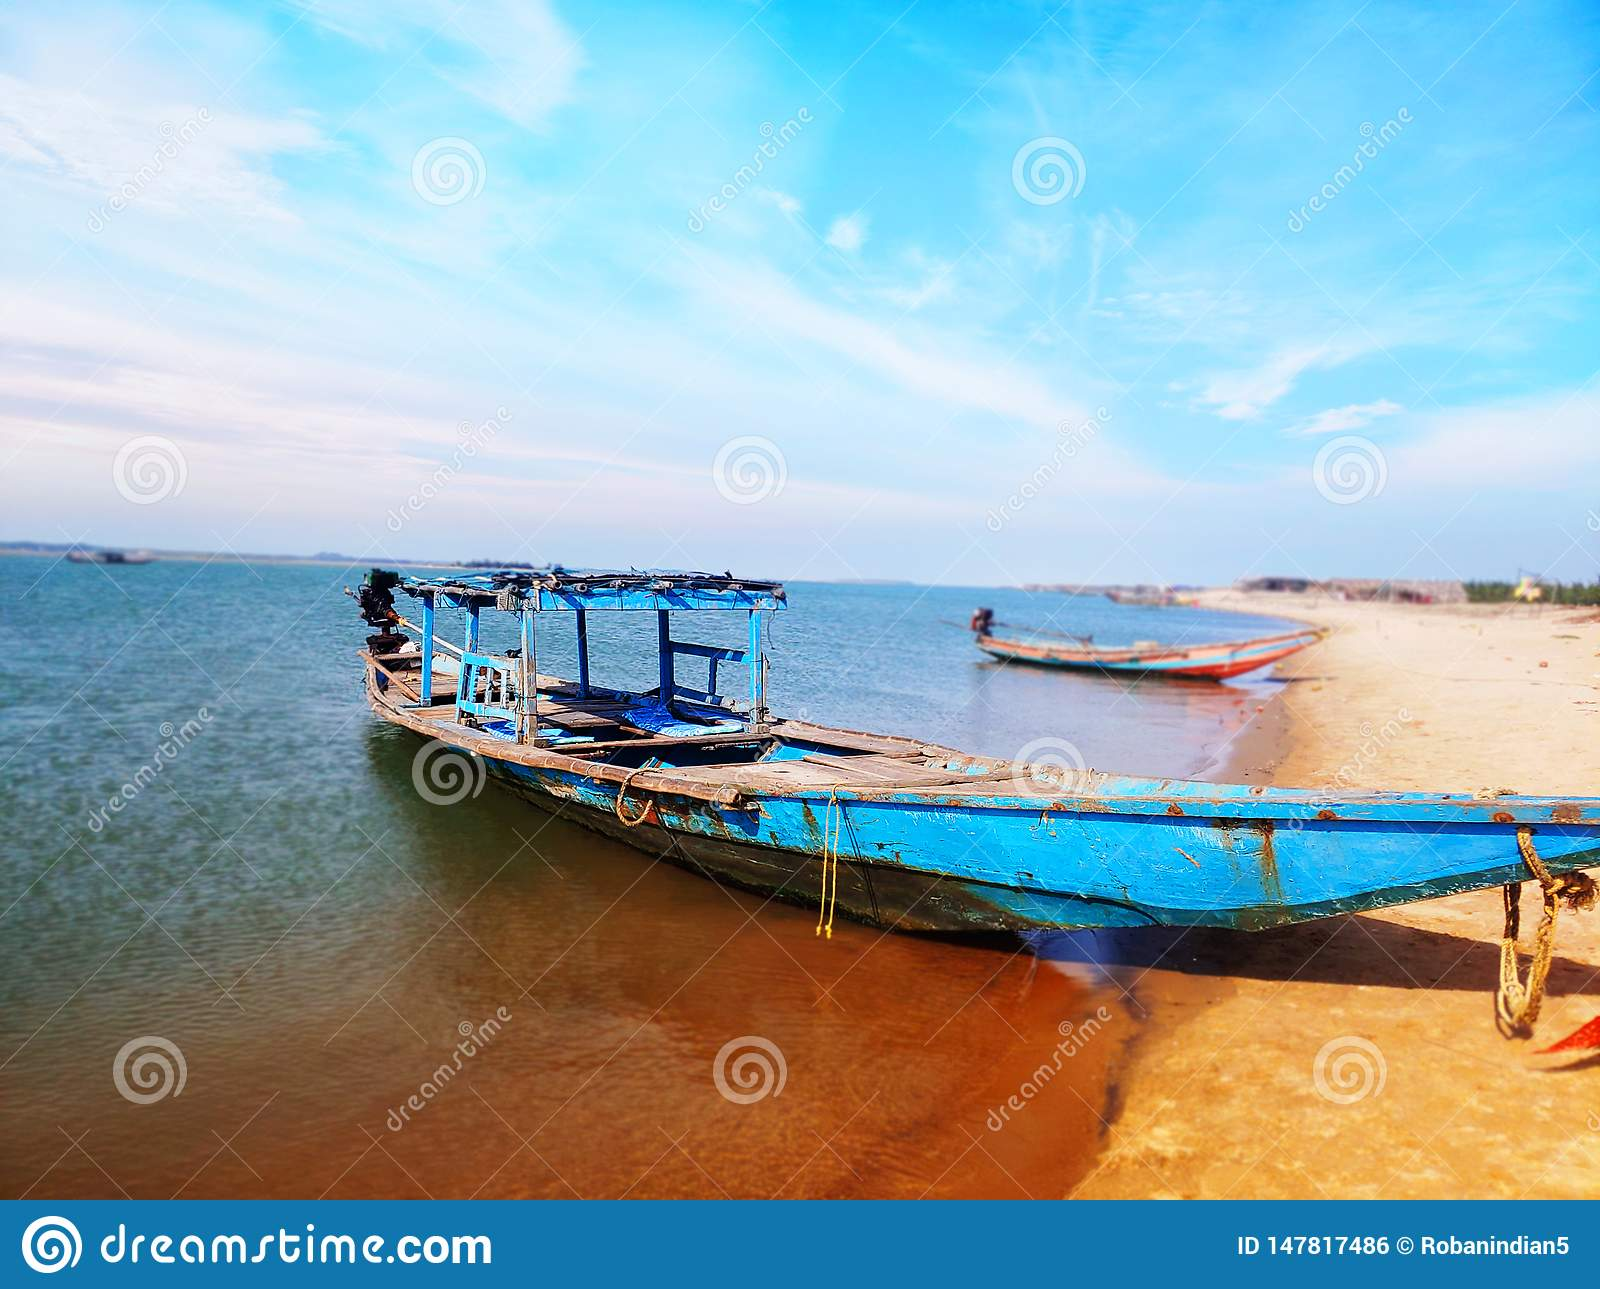 Sunset At Chilika Lake Puri Odisha India Stock Photo - Image of east